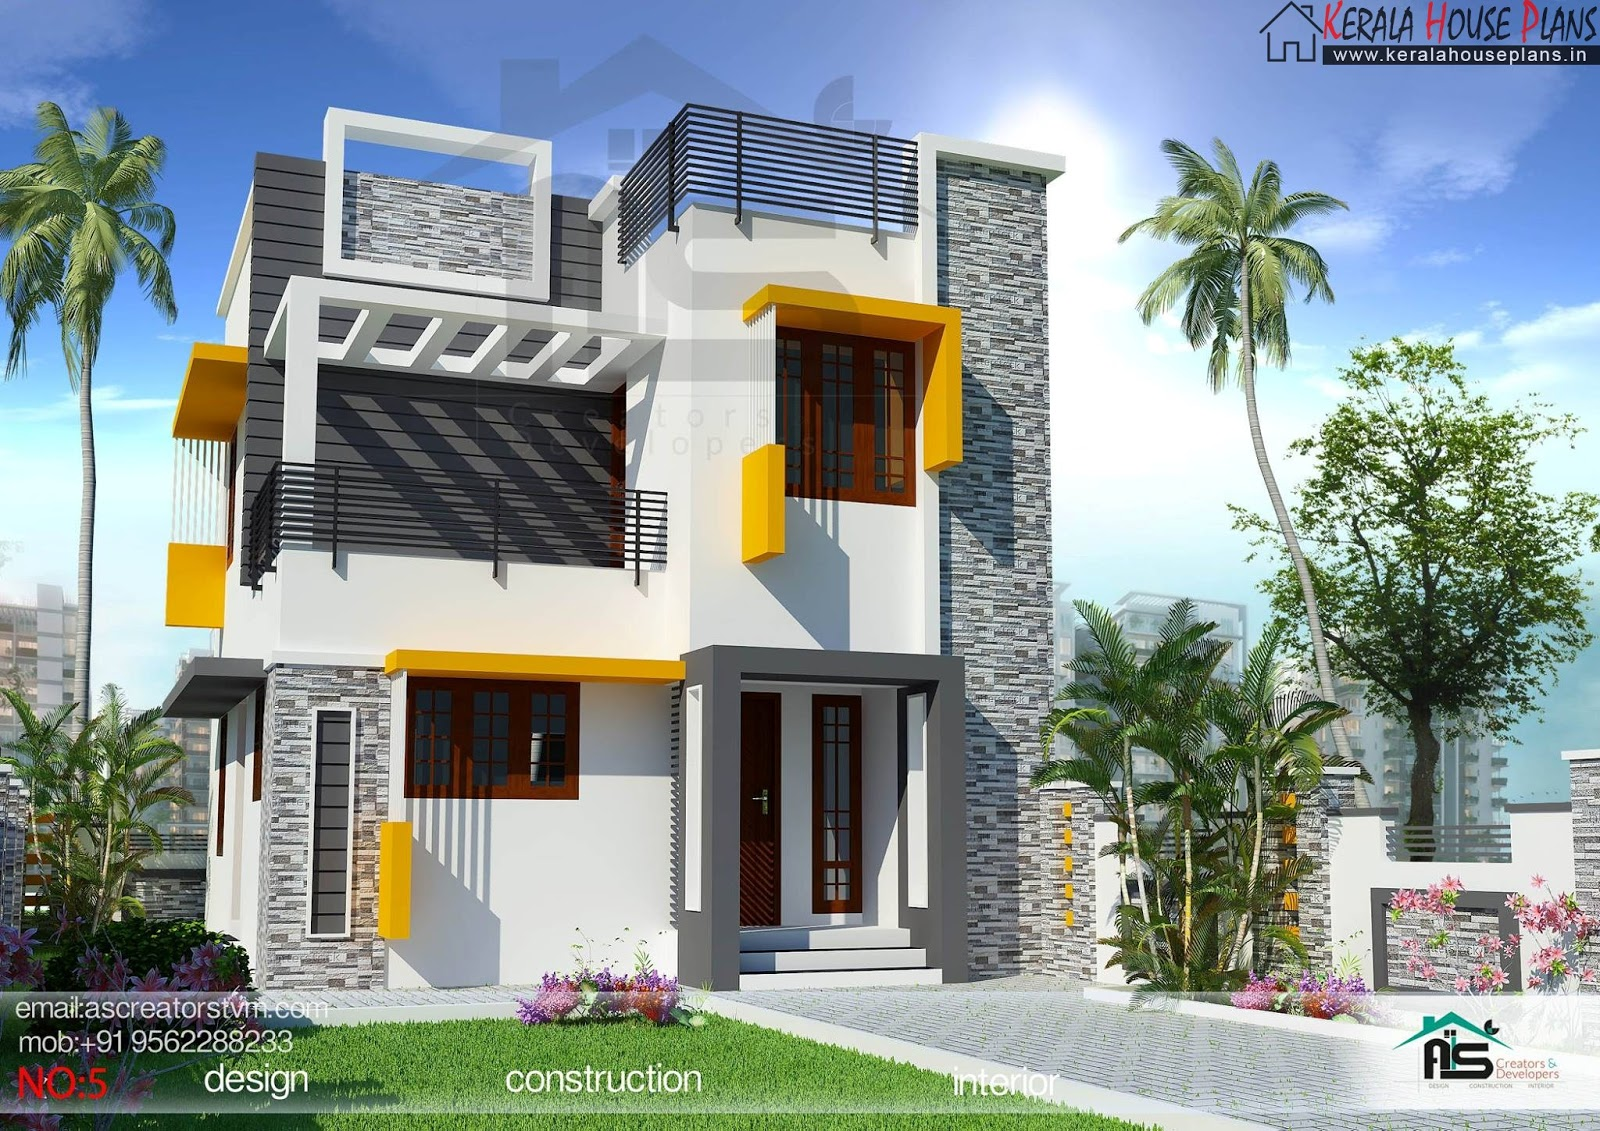 Three Bedroom House Plan Kerala Style Kerala House Plans